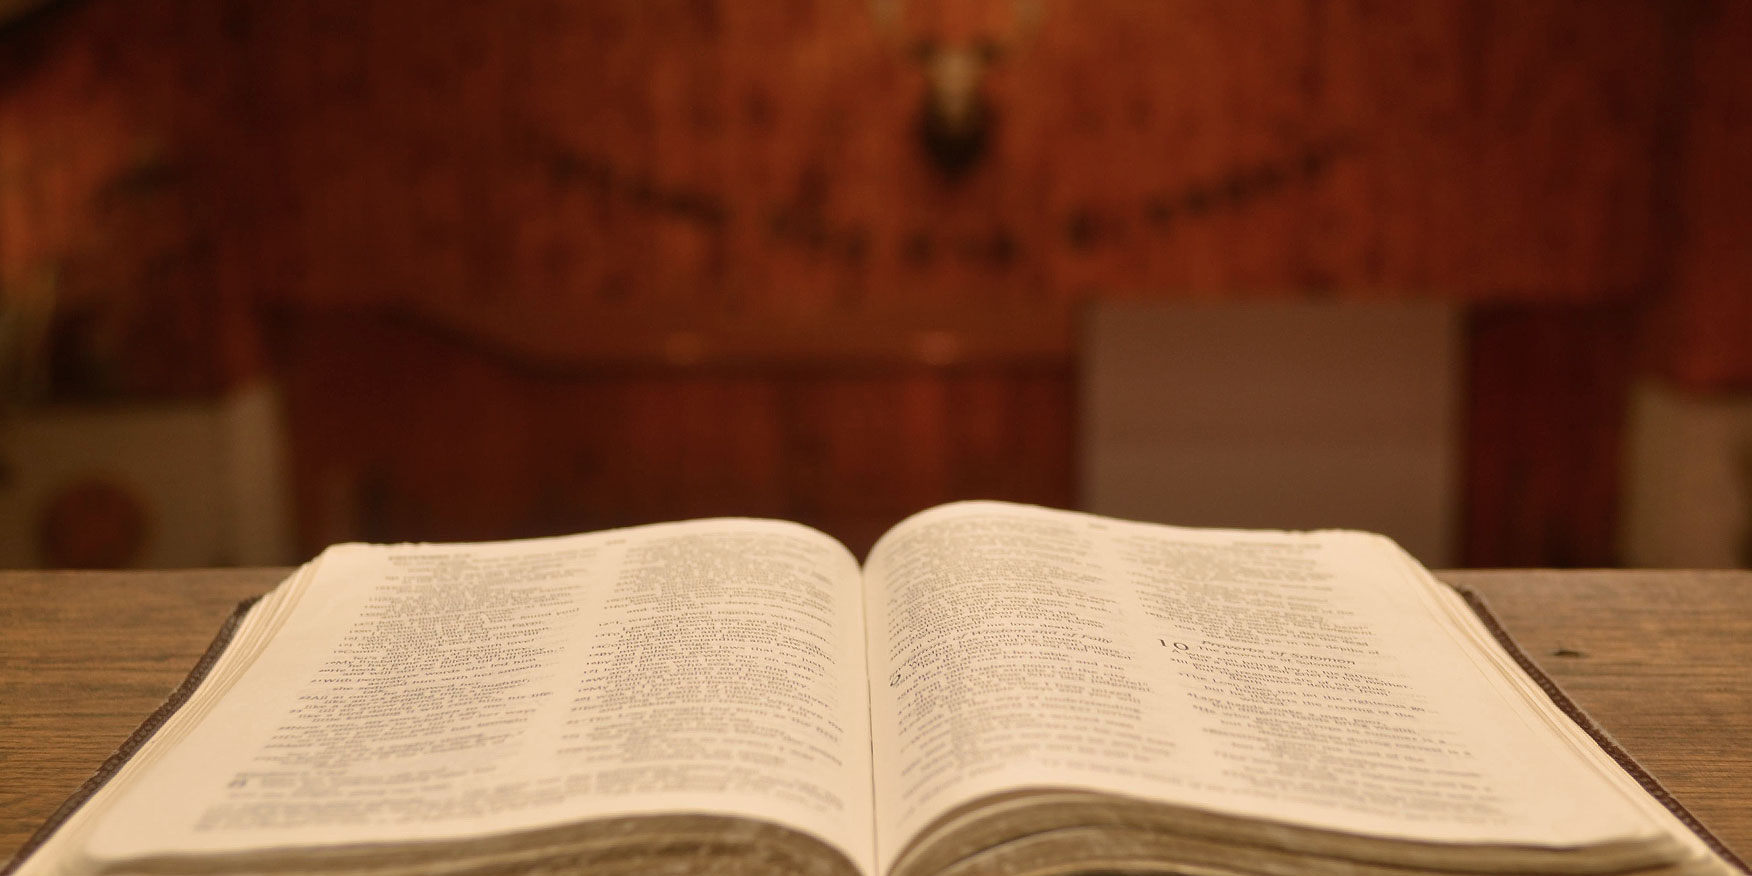 An open Bible in the Chapel at Camp Barakel